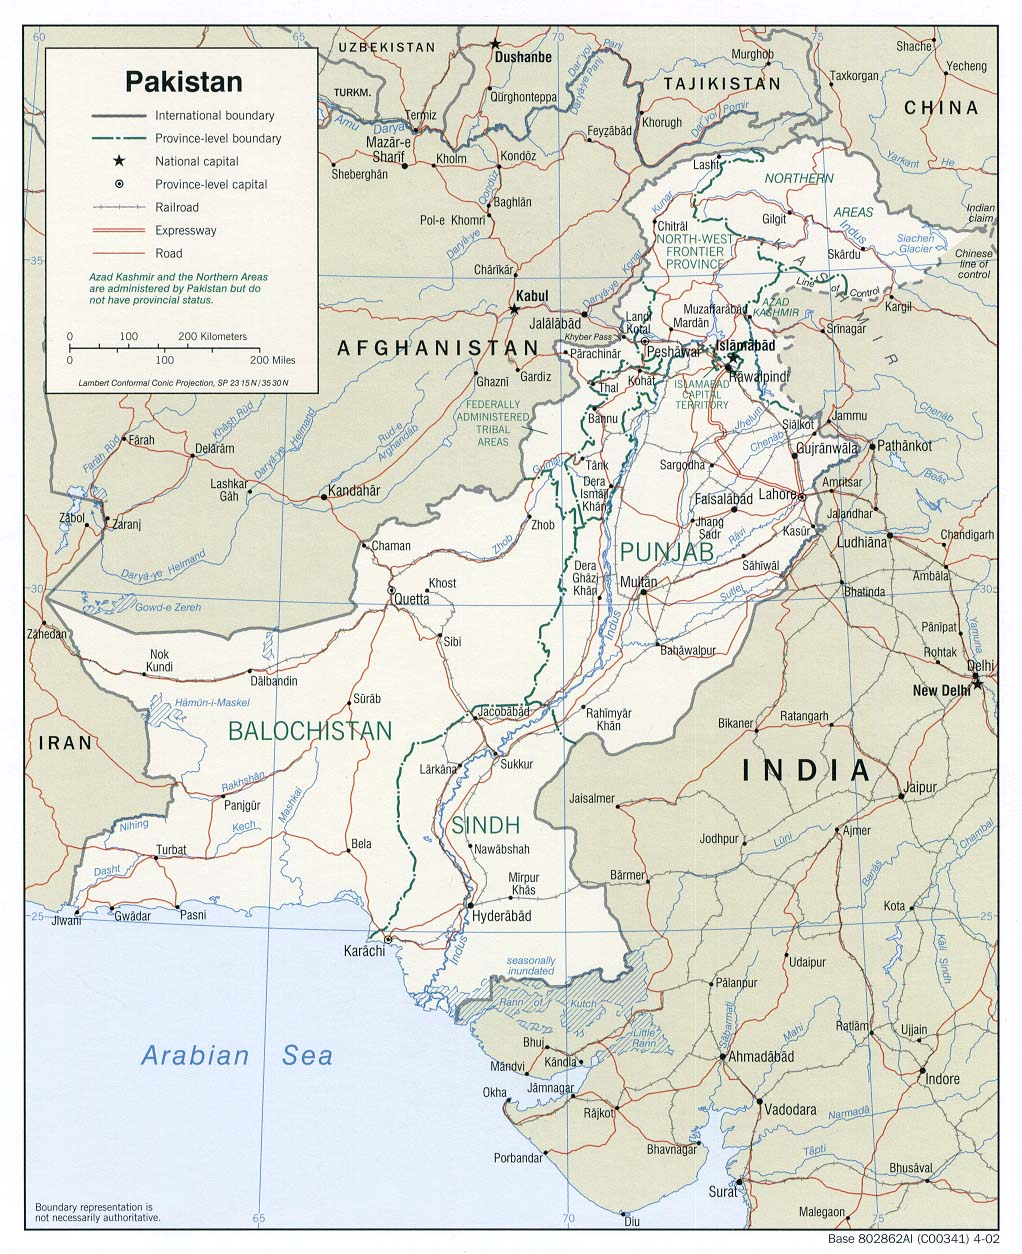 topographic map of pakistan Pakistan Maps Perry Castaneda Map Collection Ut Library Online